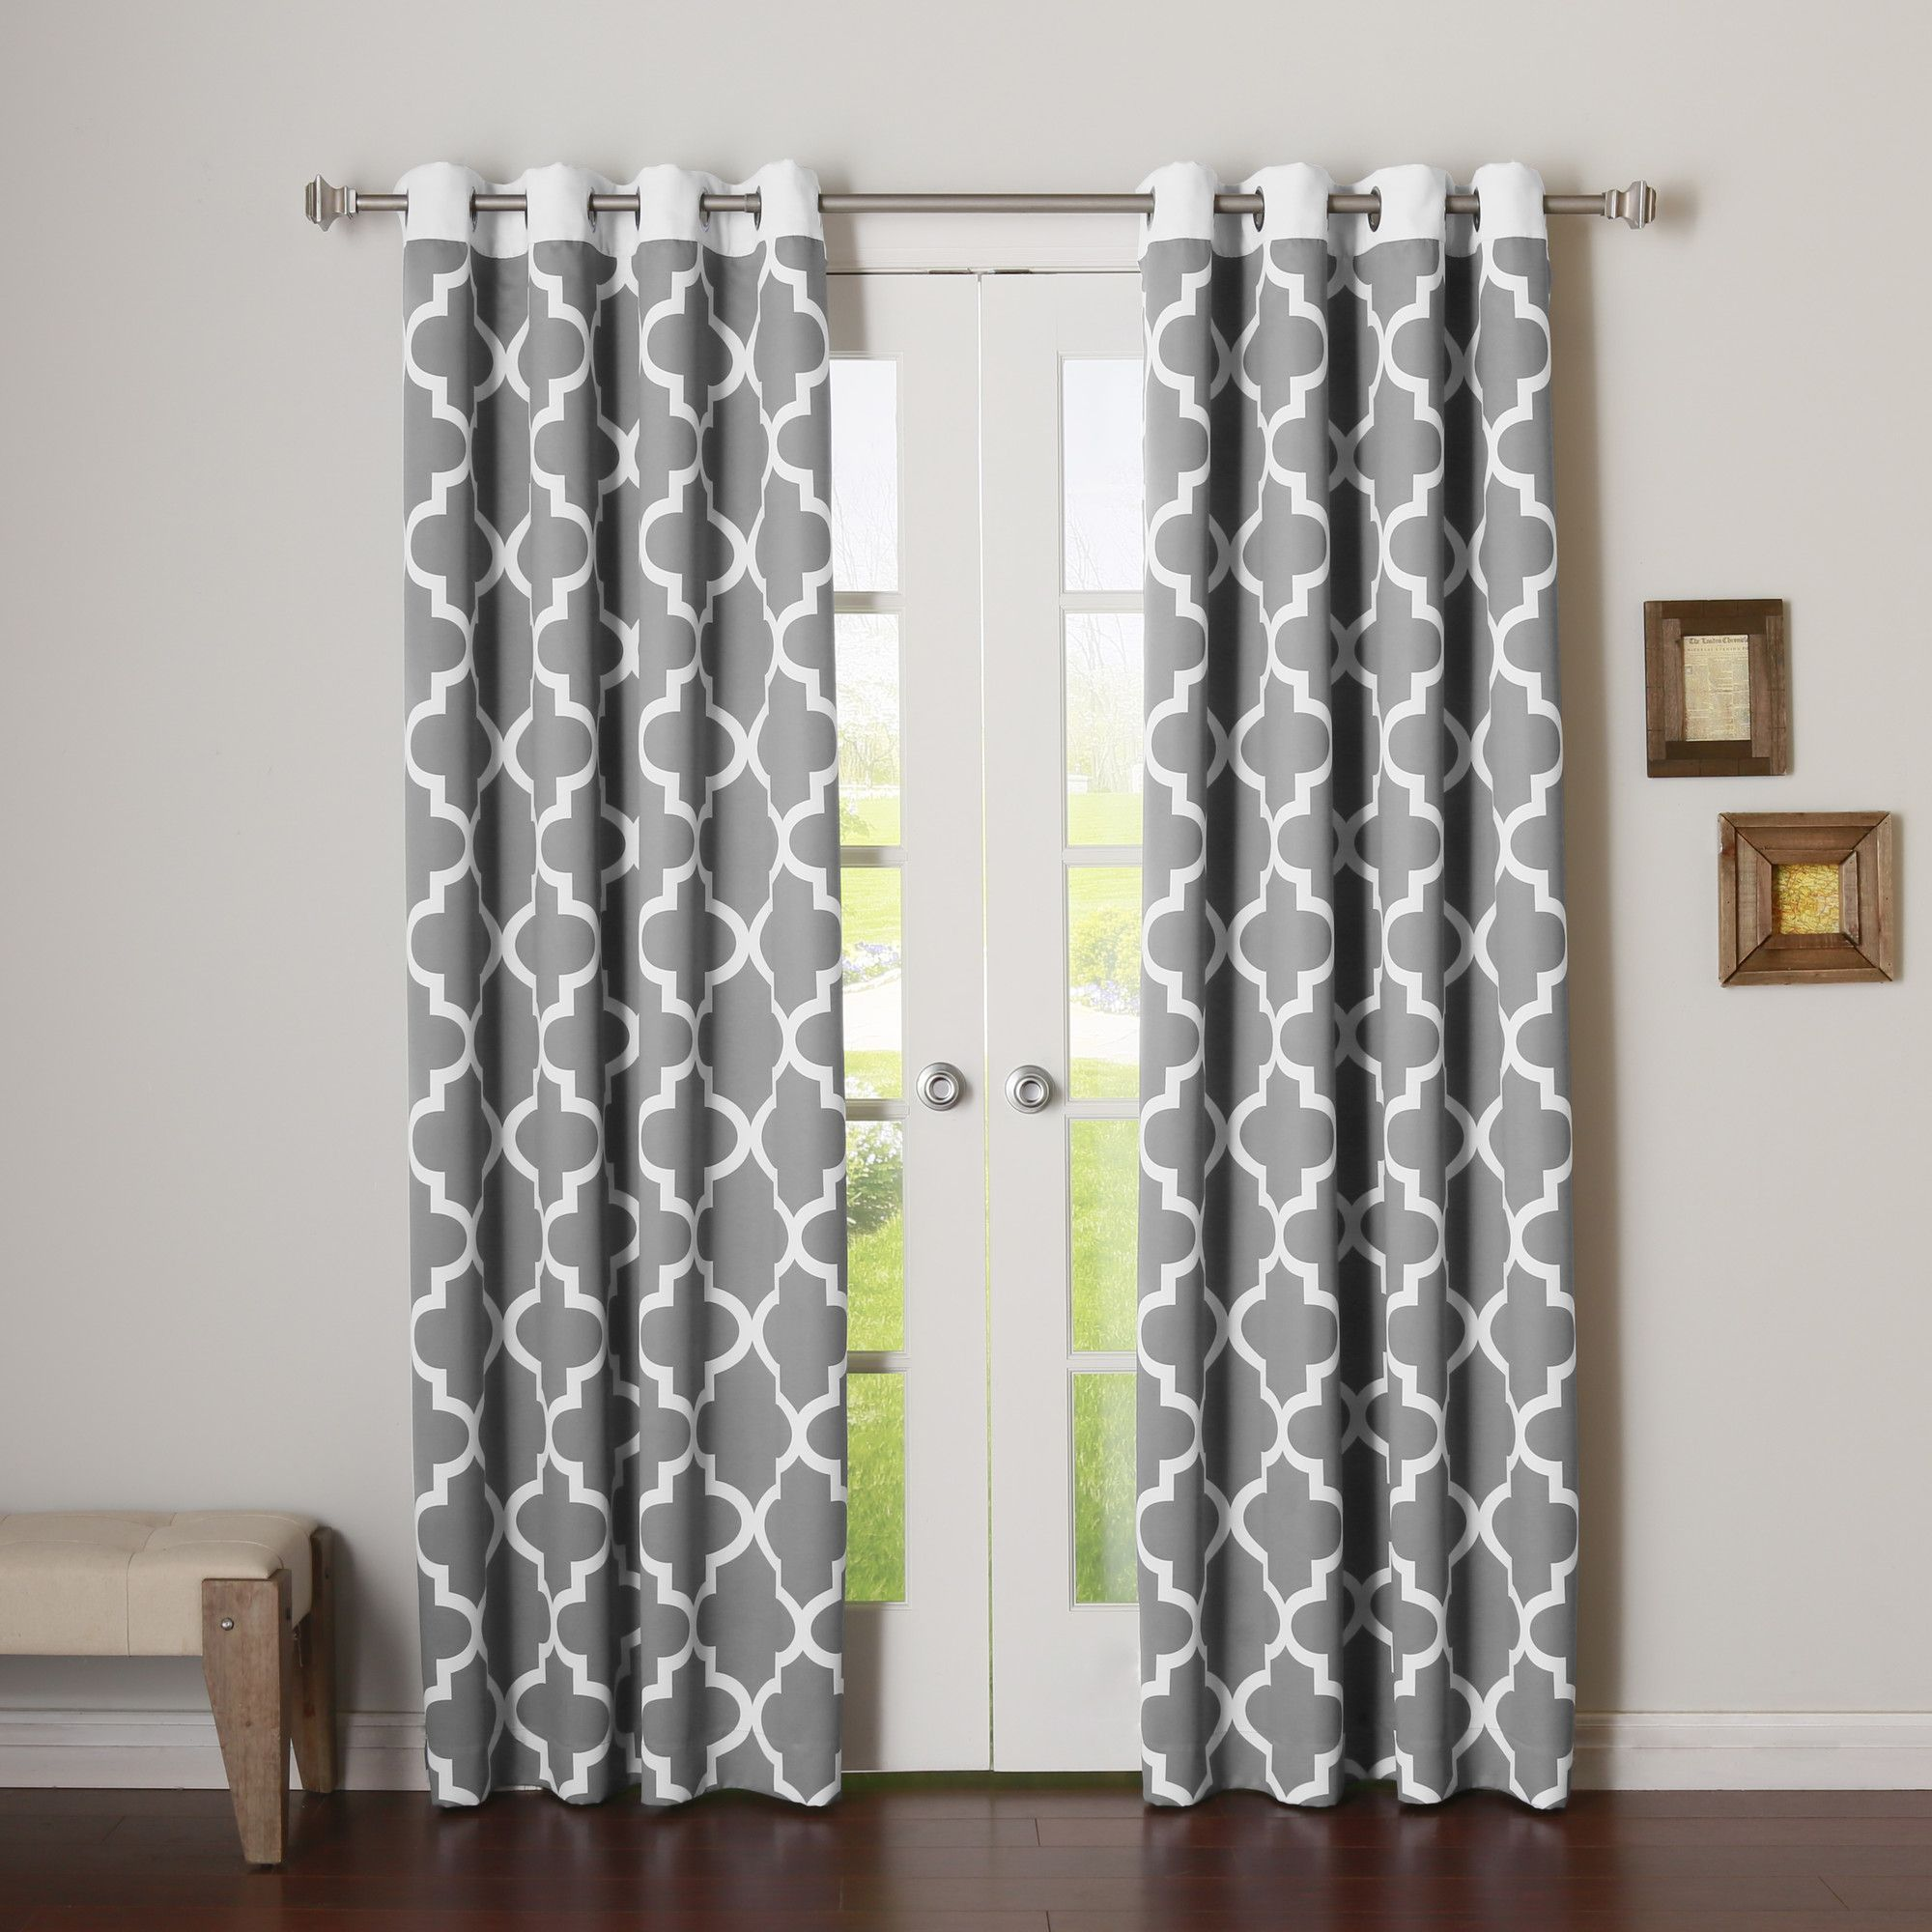 Features features an innovative single layer triple weave fabric